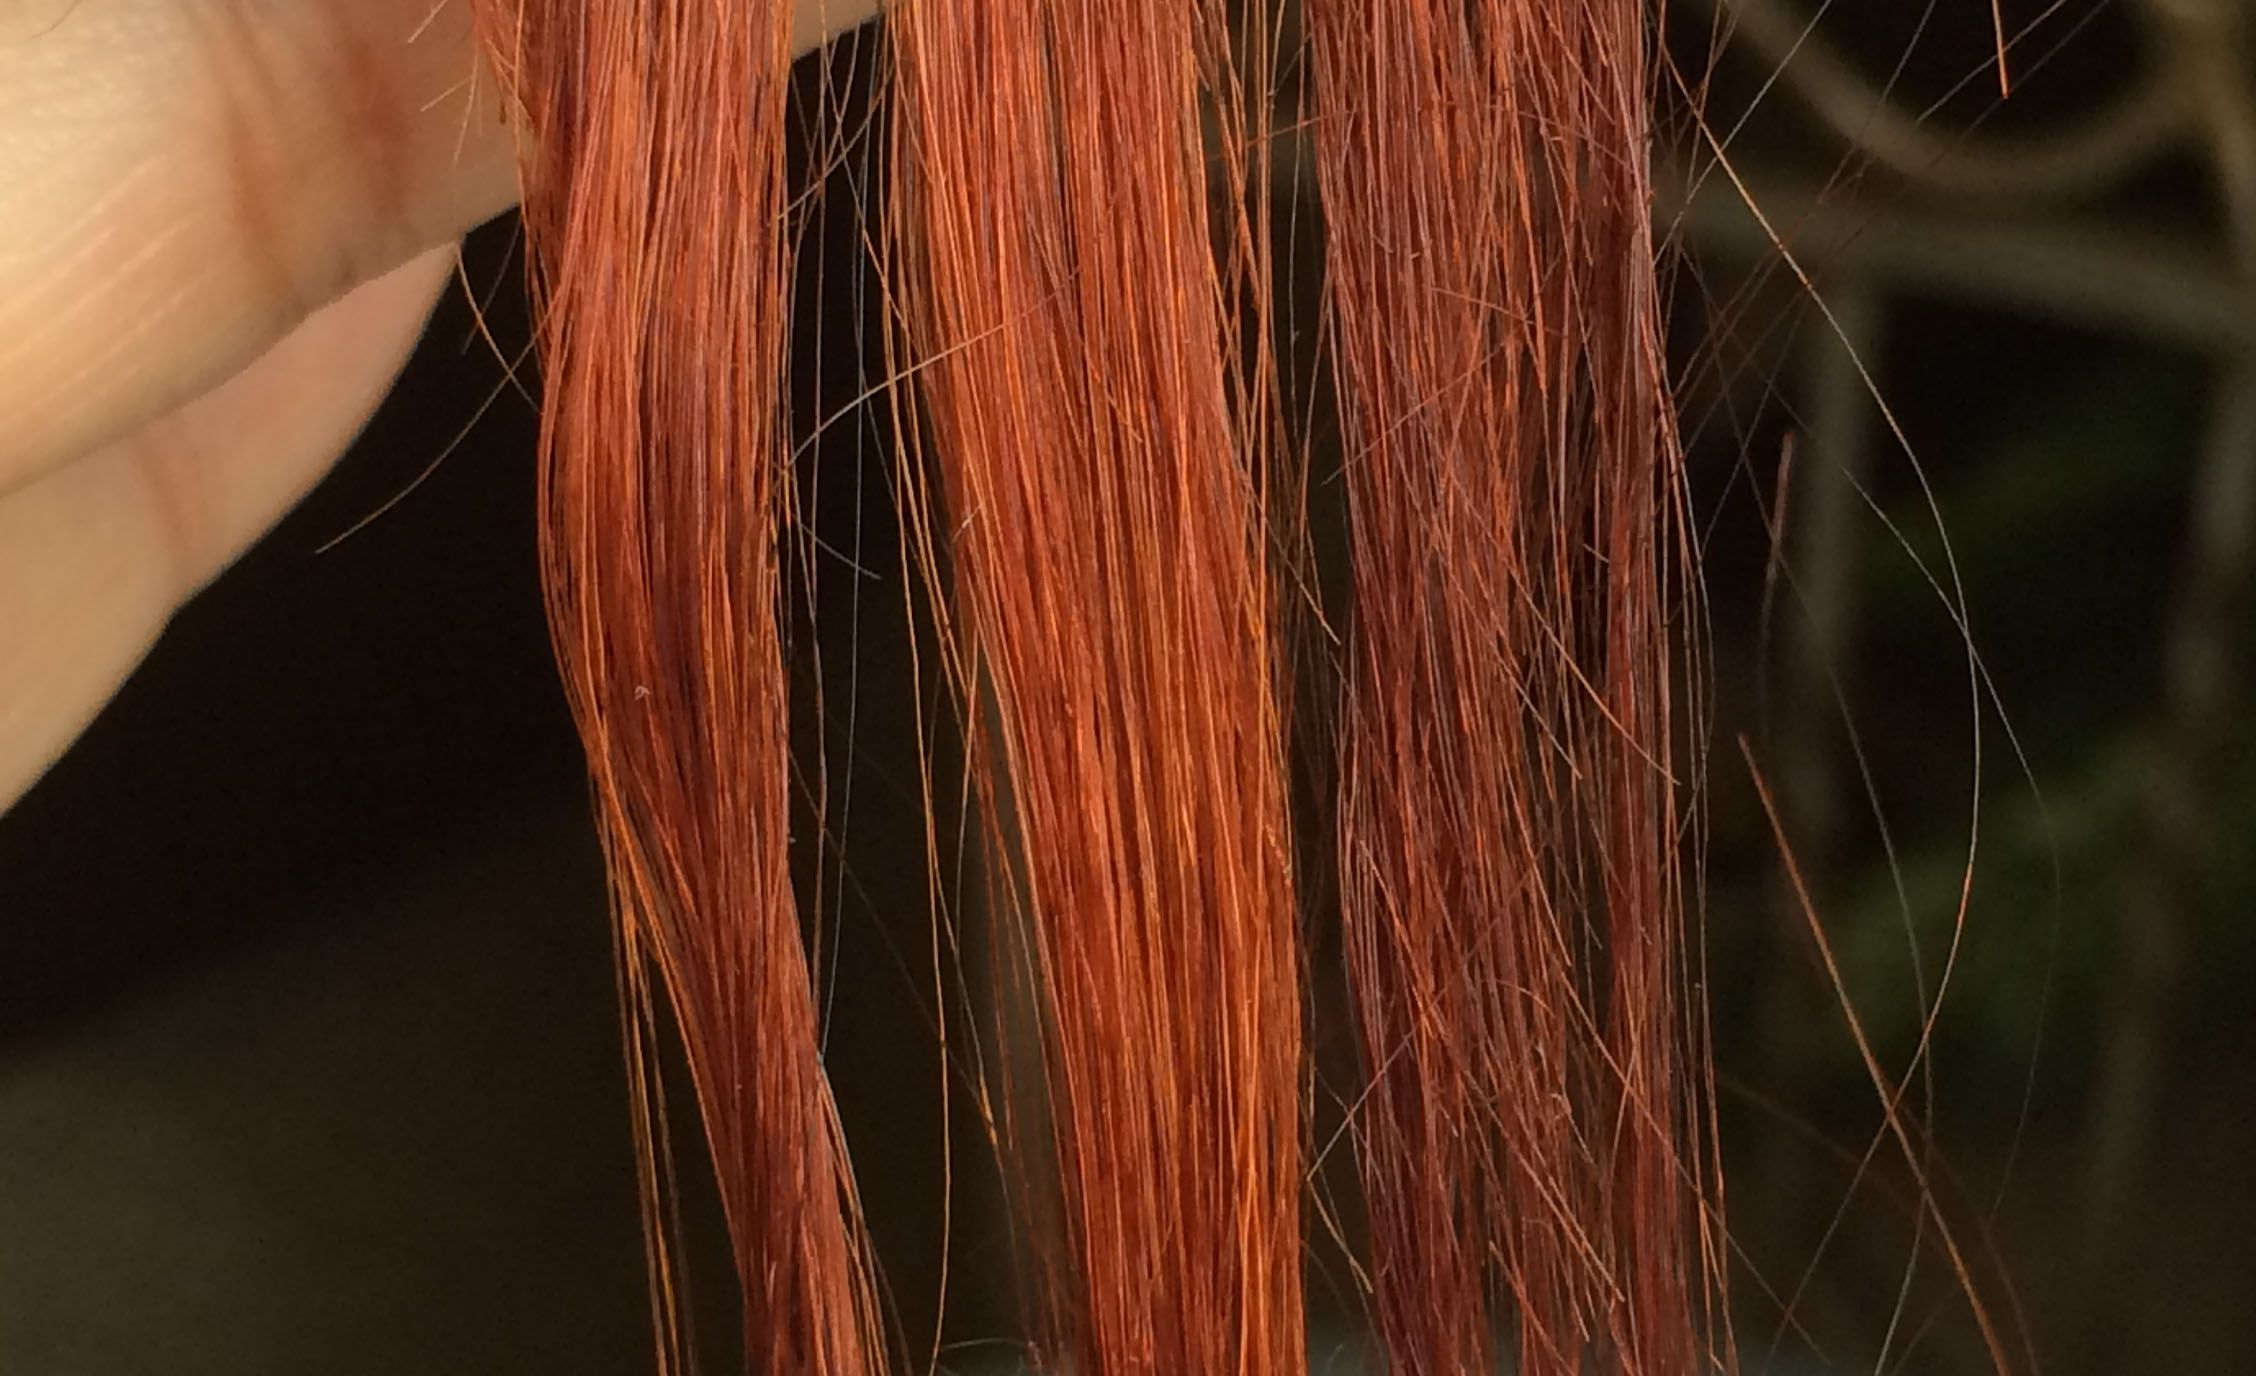 How To Remove Henna And Herbal Hair Dye From Your Hair Henna Hair Dyes Hair Color Remover Hair Dye Removal